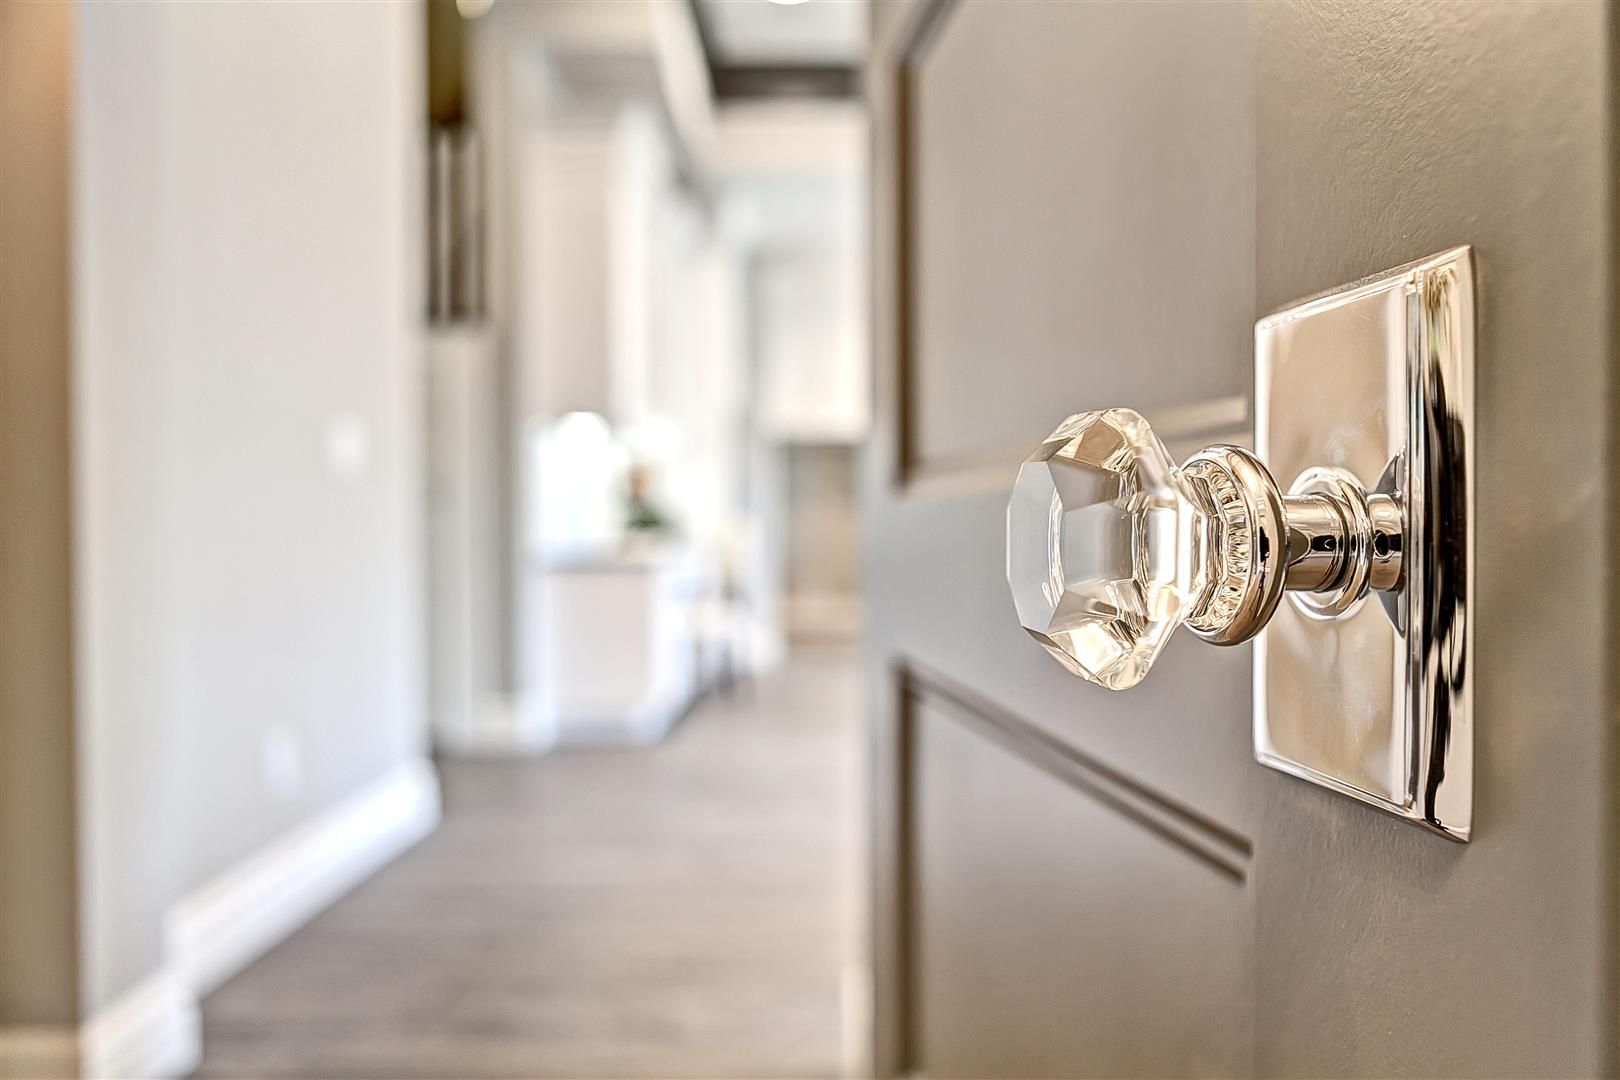 Doorknobs for new house throughout house including closet doors doorknobs for new house throughout house including closet doors httpemtek rubansaba